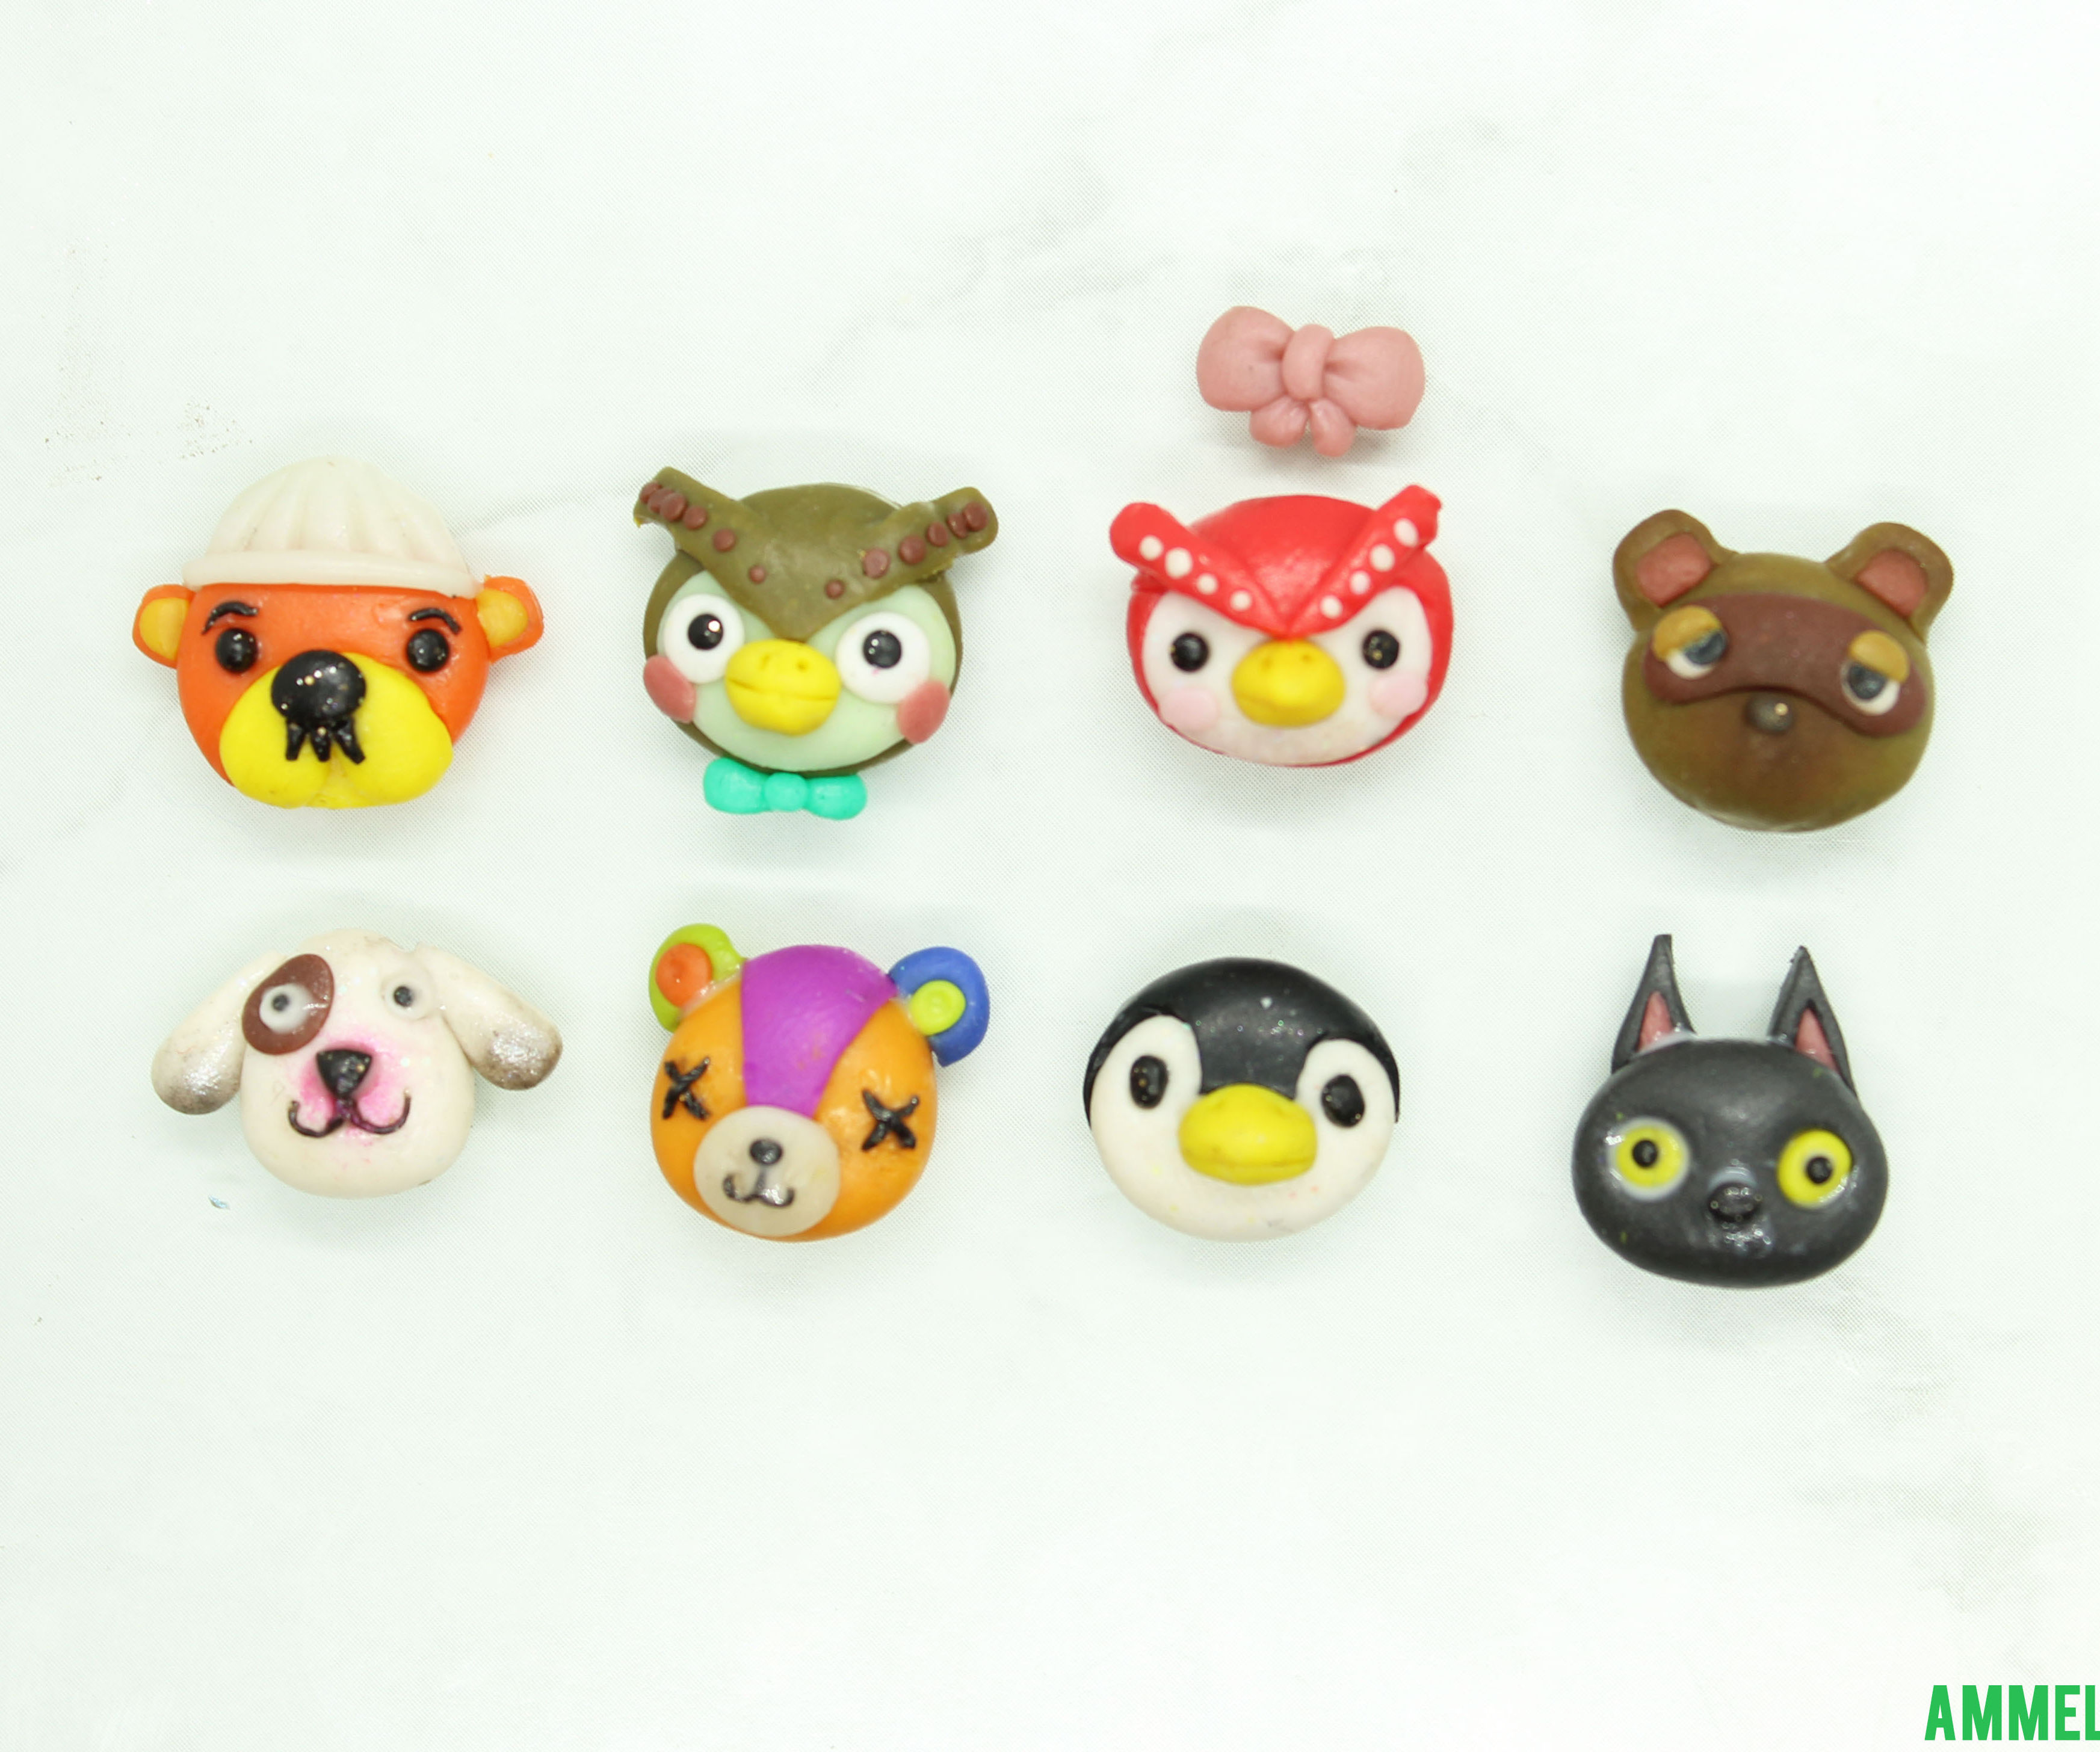 Animal Crossing Character Faces From Polymer Clay